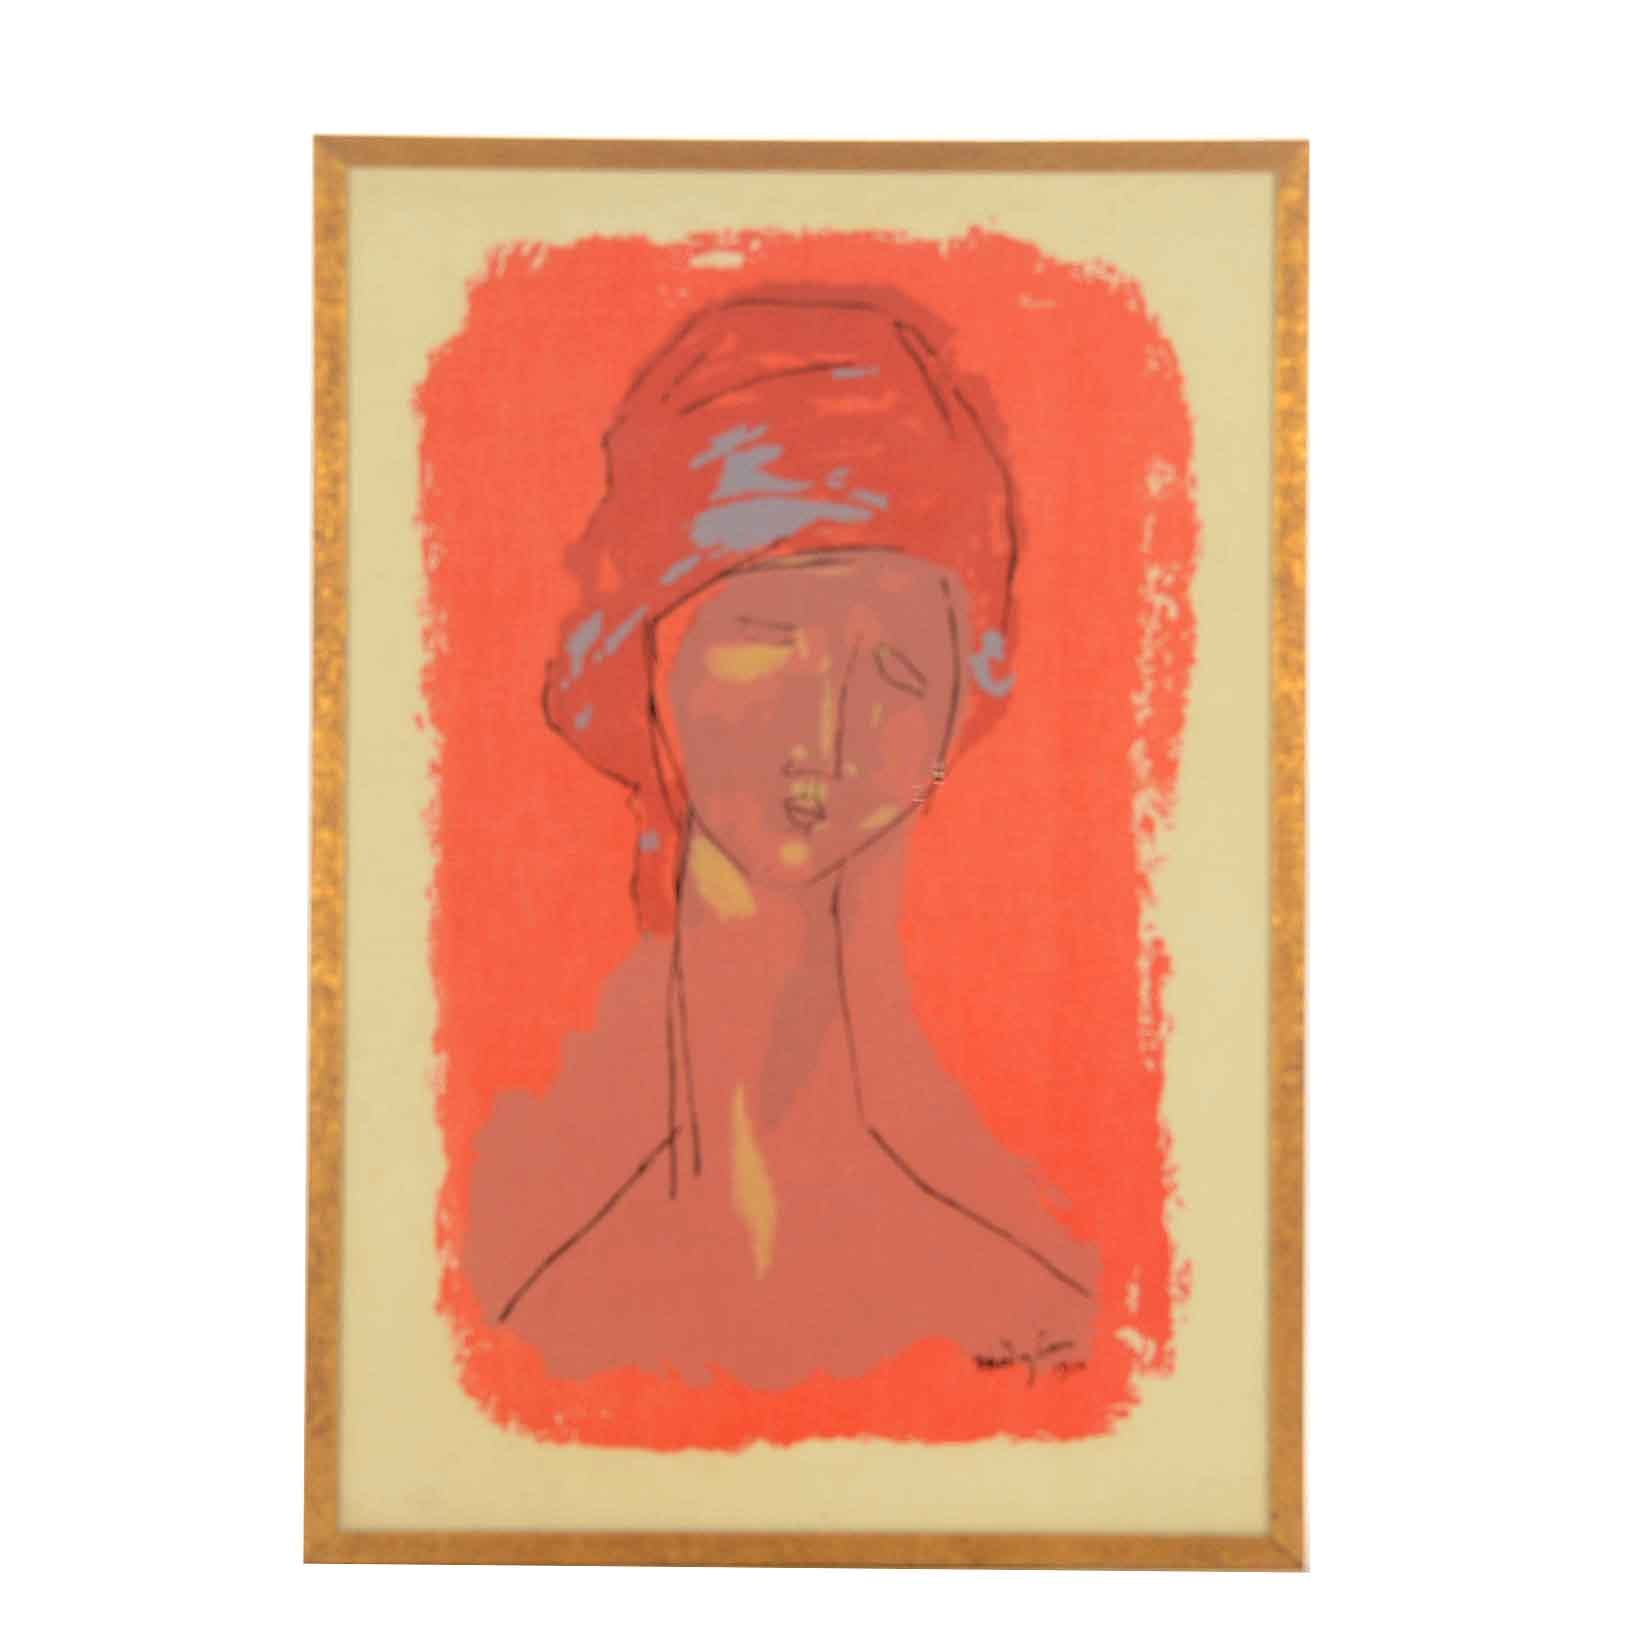 "Serigraph on Linen after Amedeo Modigliani's ""Tete de Femme"""